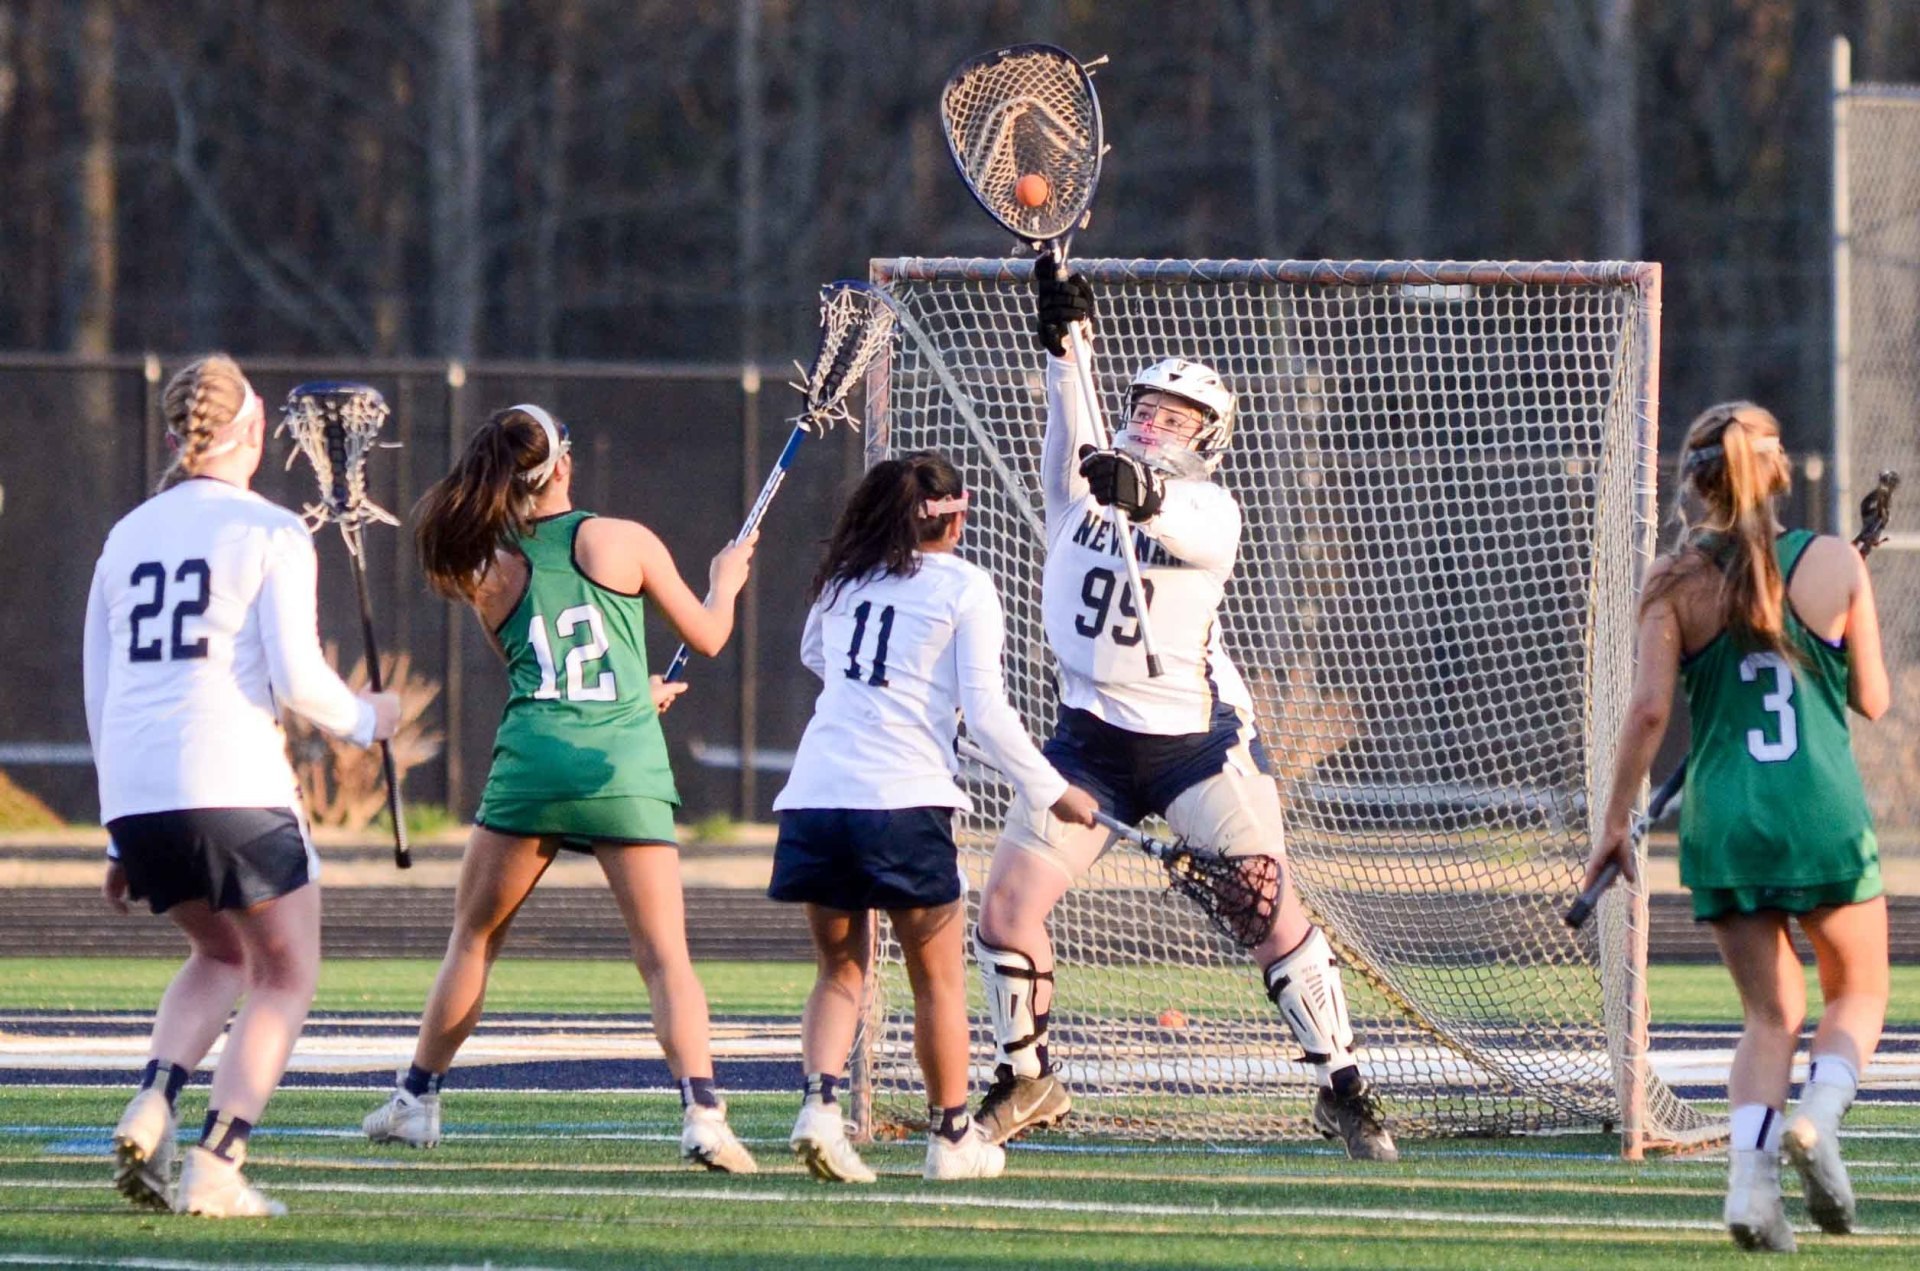 Newnan goalie Lani Roth makes one of her 10 saves in the first half against Harrison.